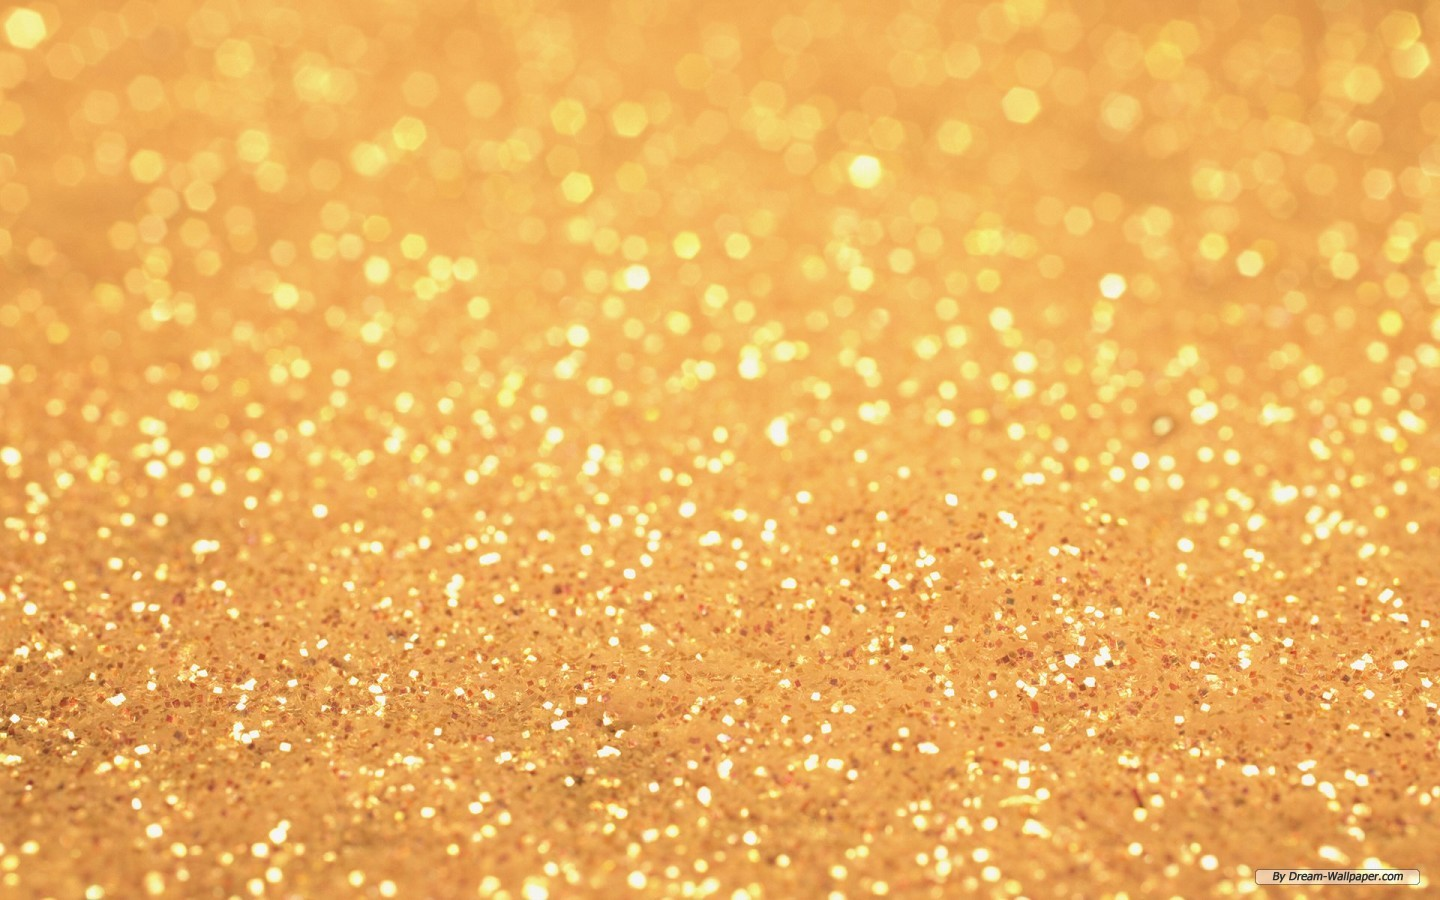 Free Photography wallpaper - Sparkling Diamond Crystal 1 wallpaper - 1440x900 wallpaper - Index 13